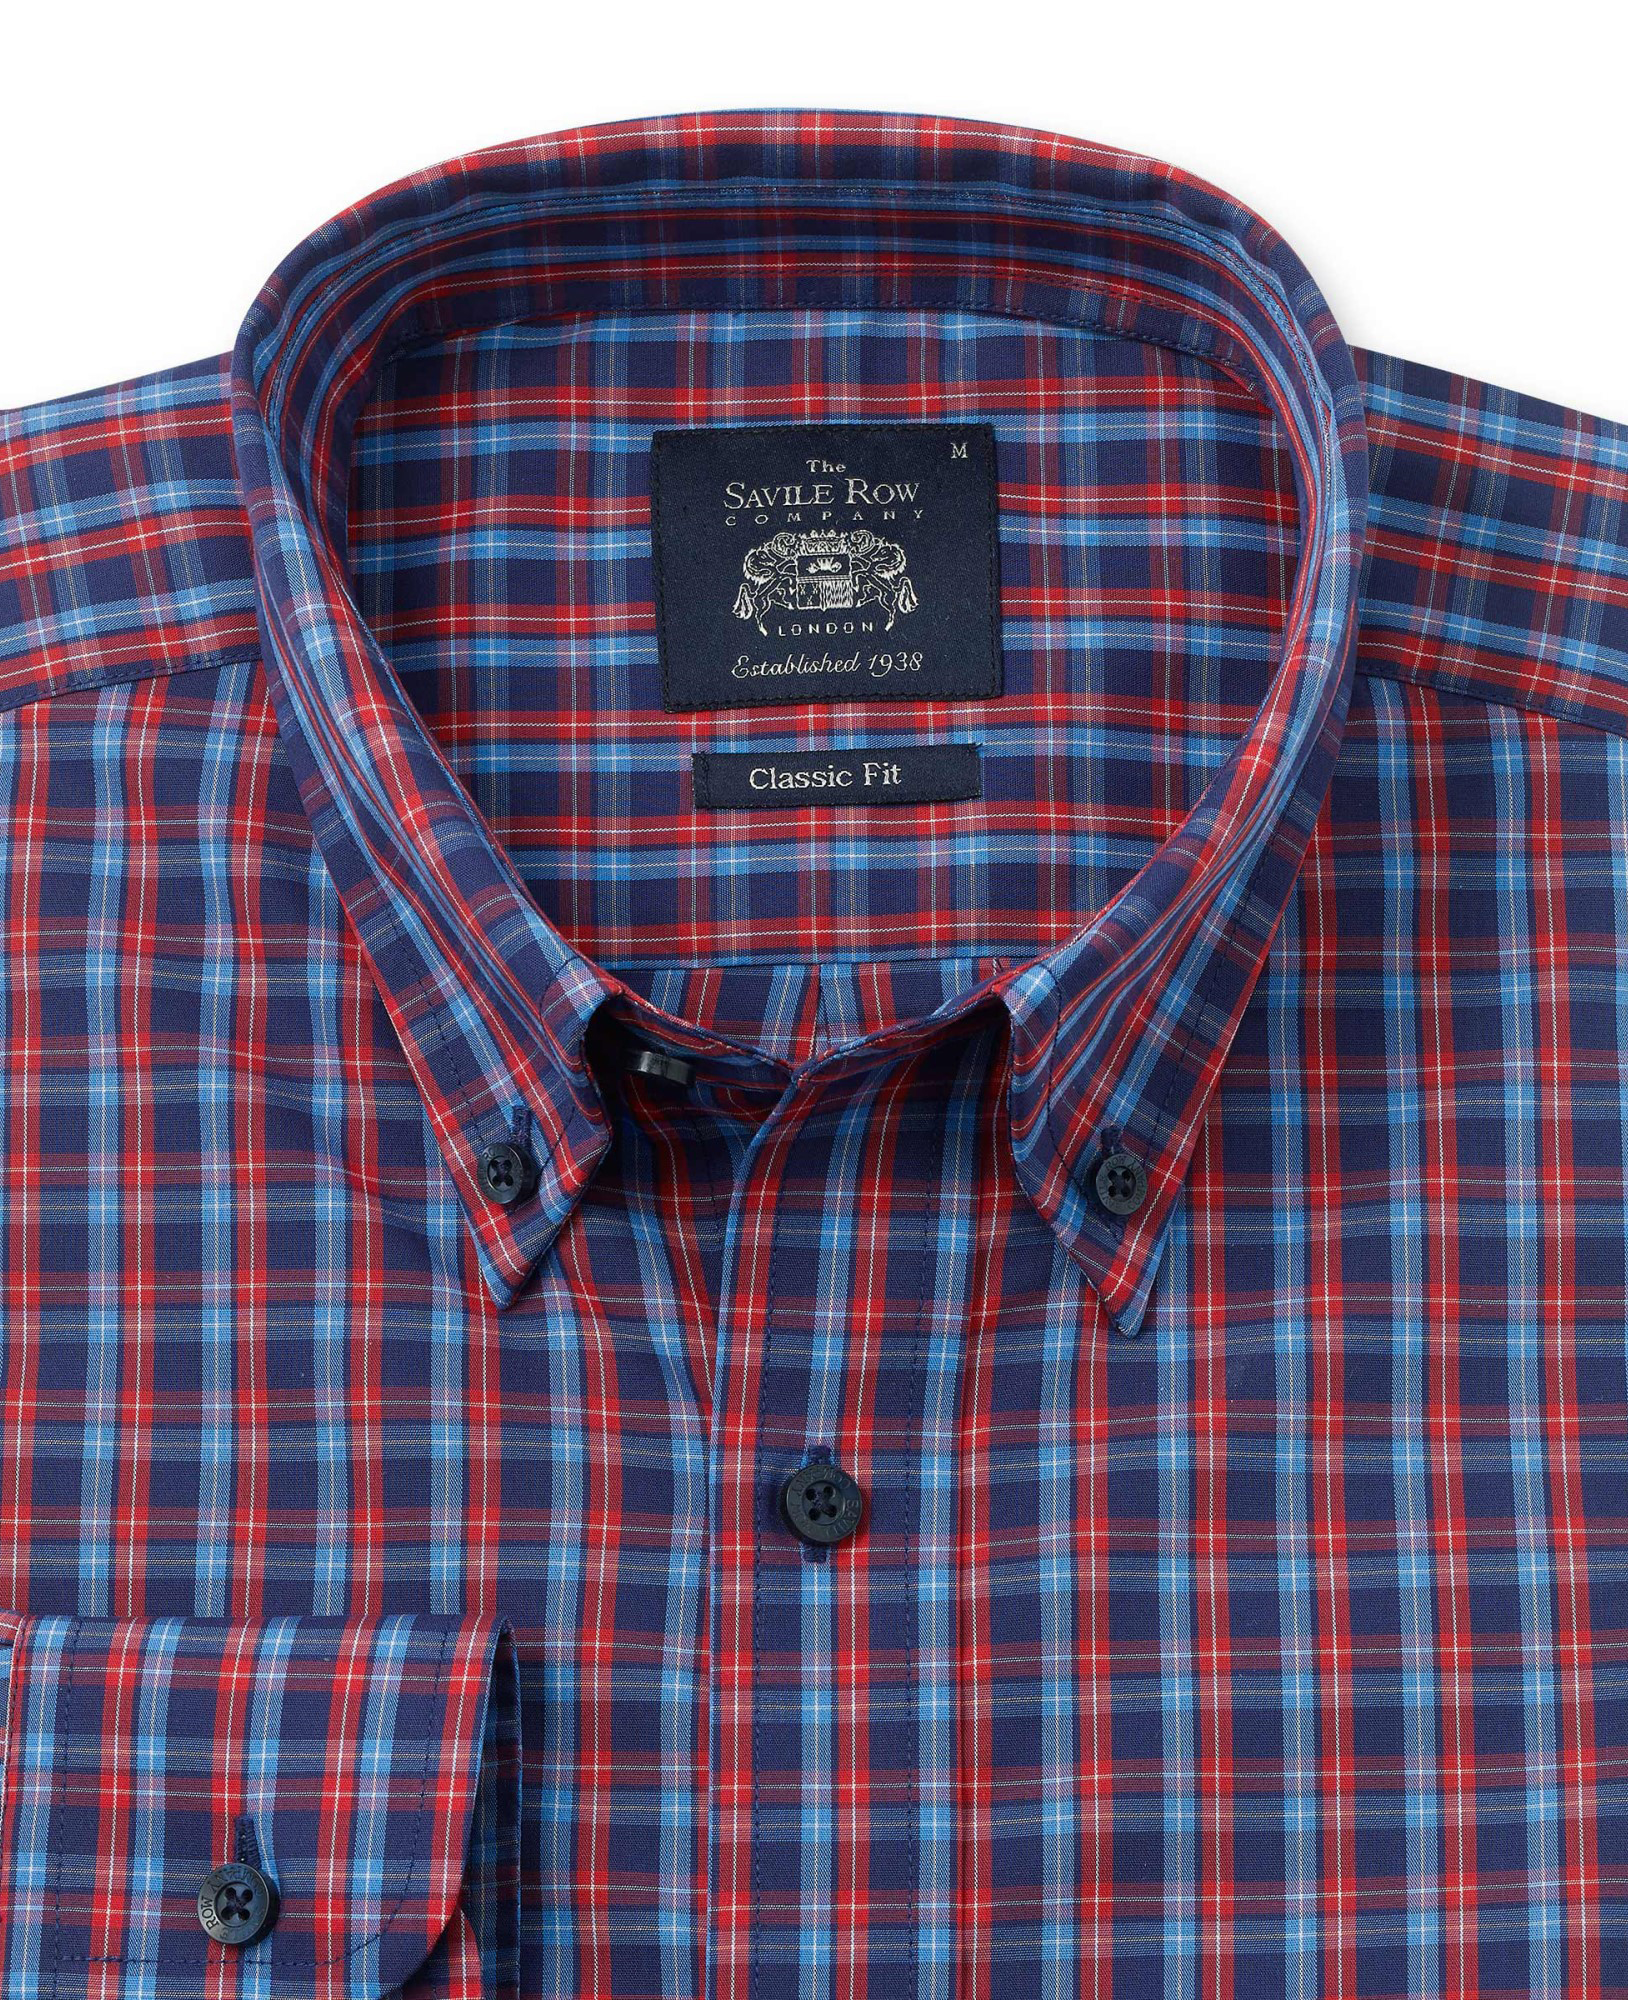 NAVY RED BLUE CHECK CASUAL FIT SHIRT-1062NRB